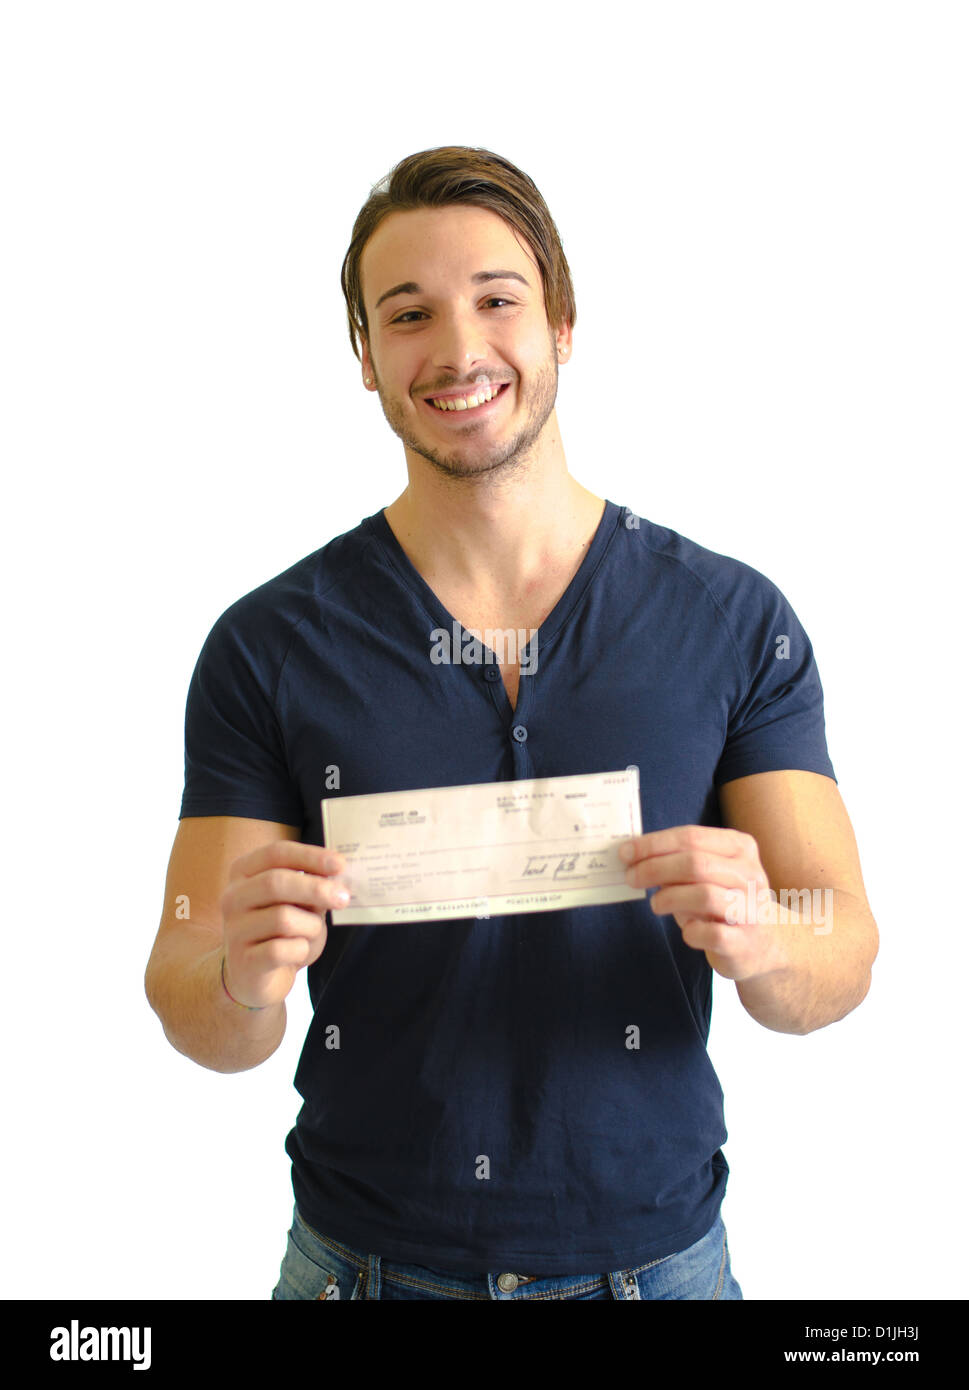 Happy, smiling young man with check (cheque) in hands, looking at camera - Stock Image